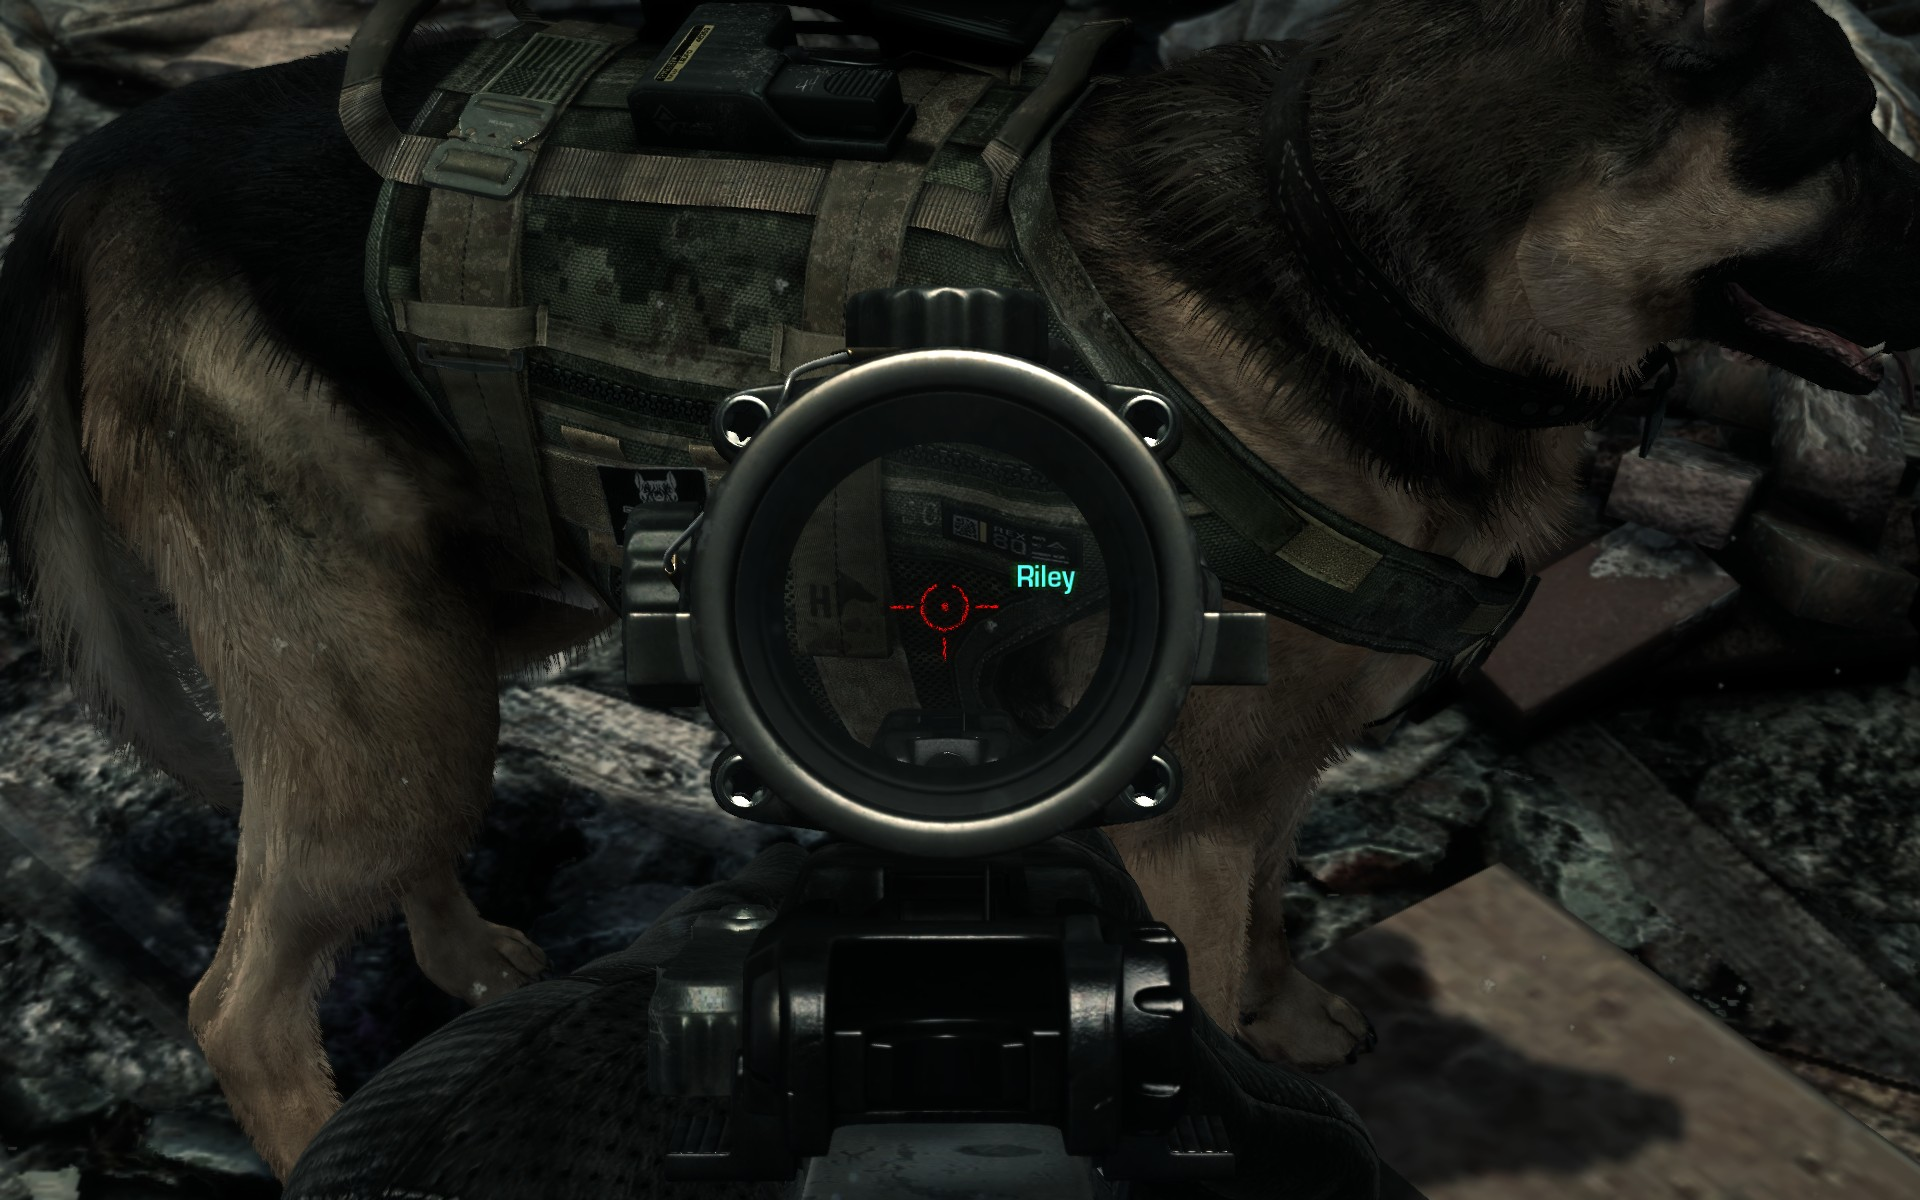 New CoD Ghosts Patch Live Now Adds Nvidias PhysX And Fur Tech Support Comparison Screens Out